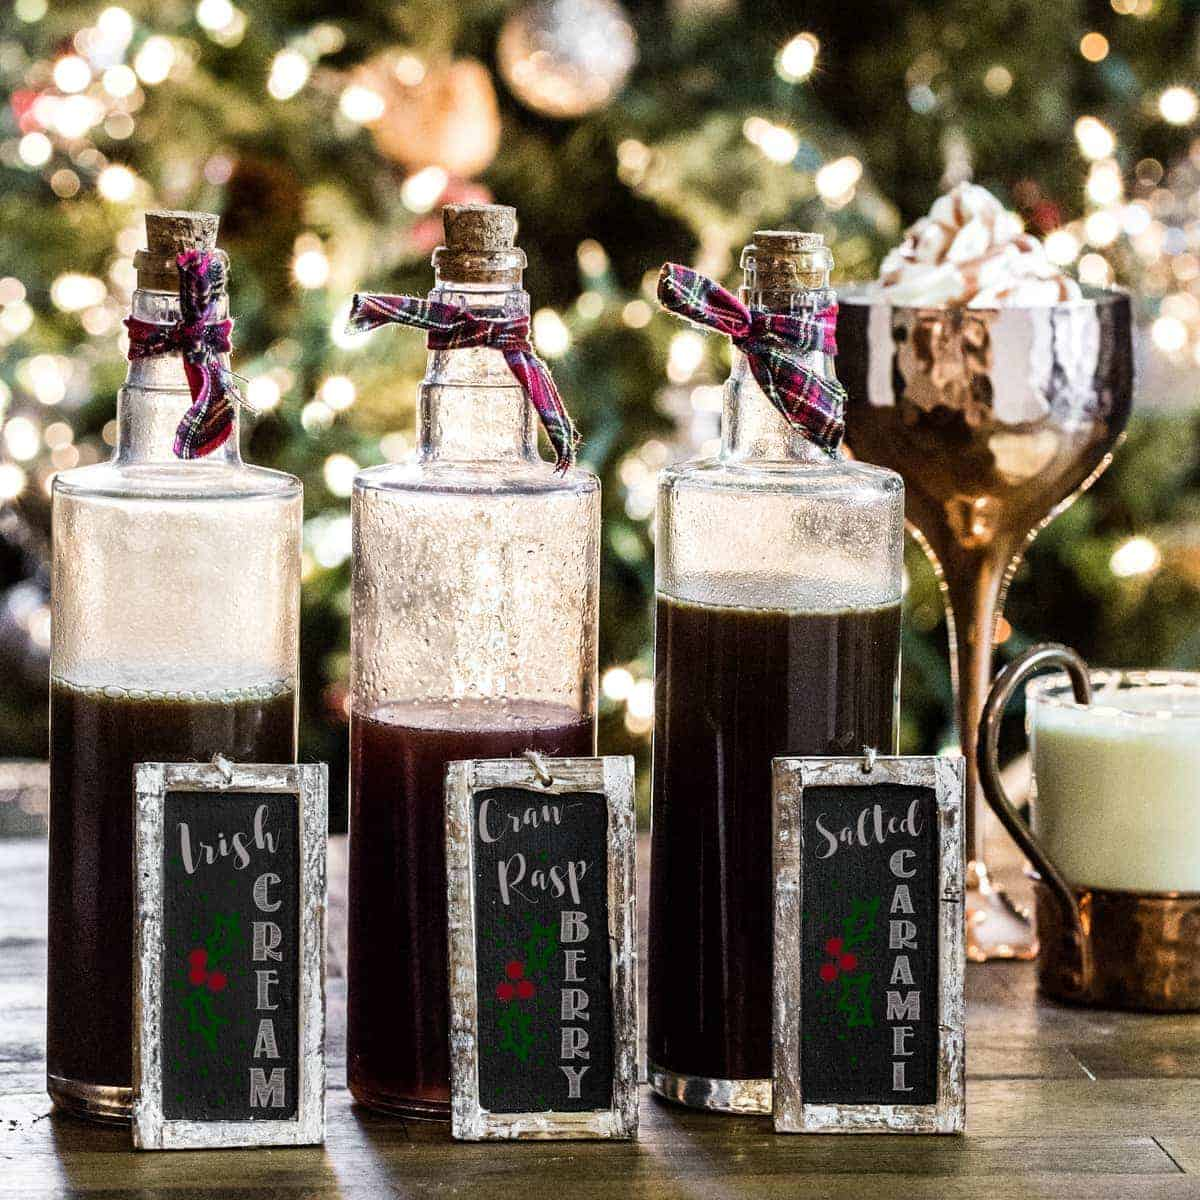 Three glass bottles of homemade syrup with chalkboard signs in front of a Christmas tree